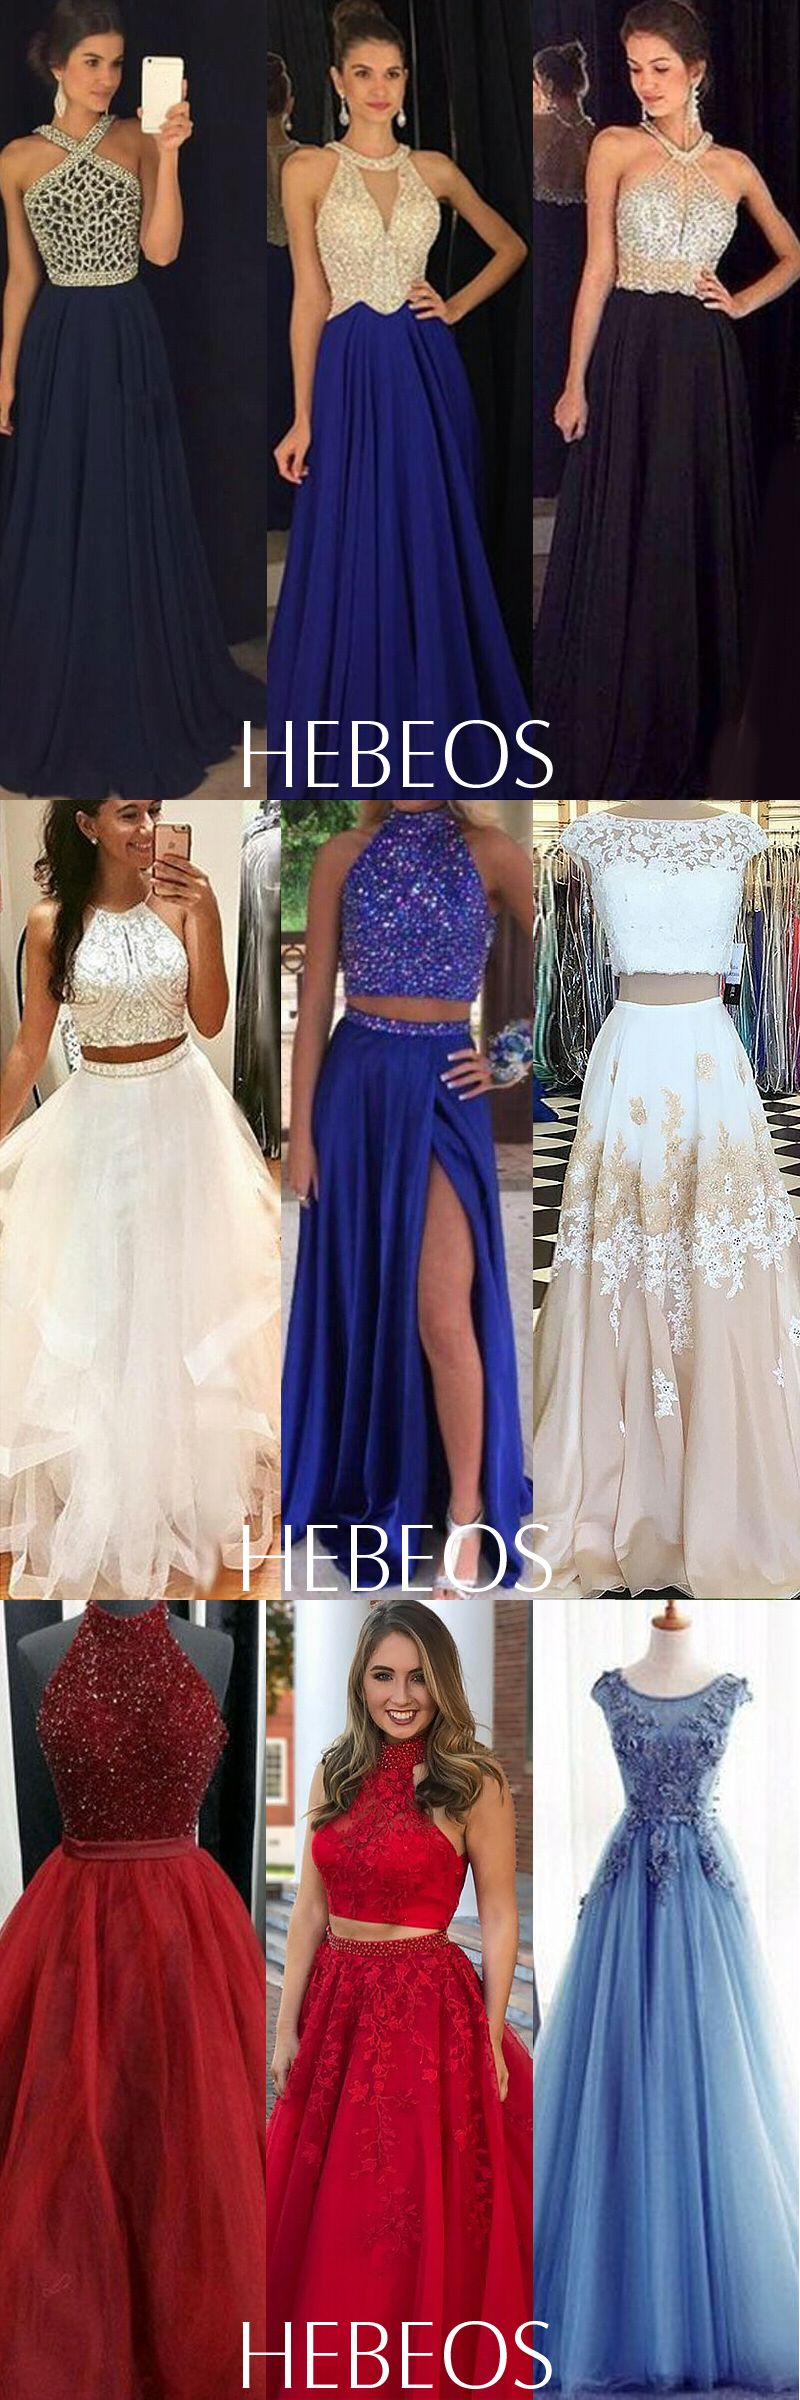 The new hebeos prom collection is here shop dresses u up in